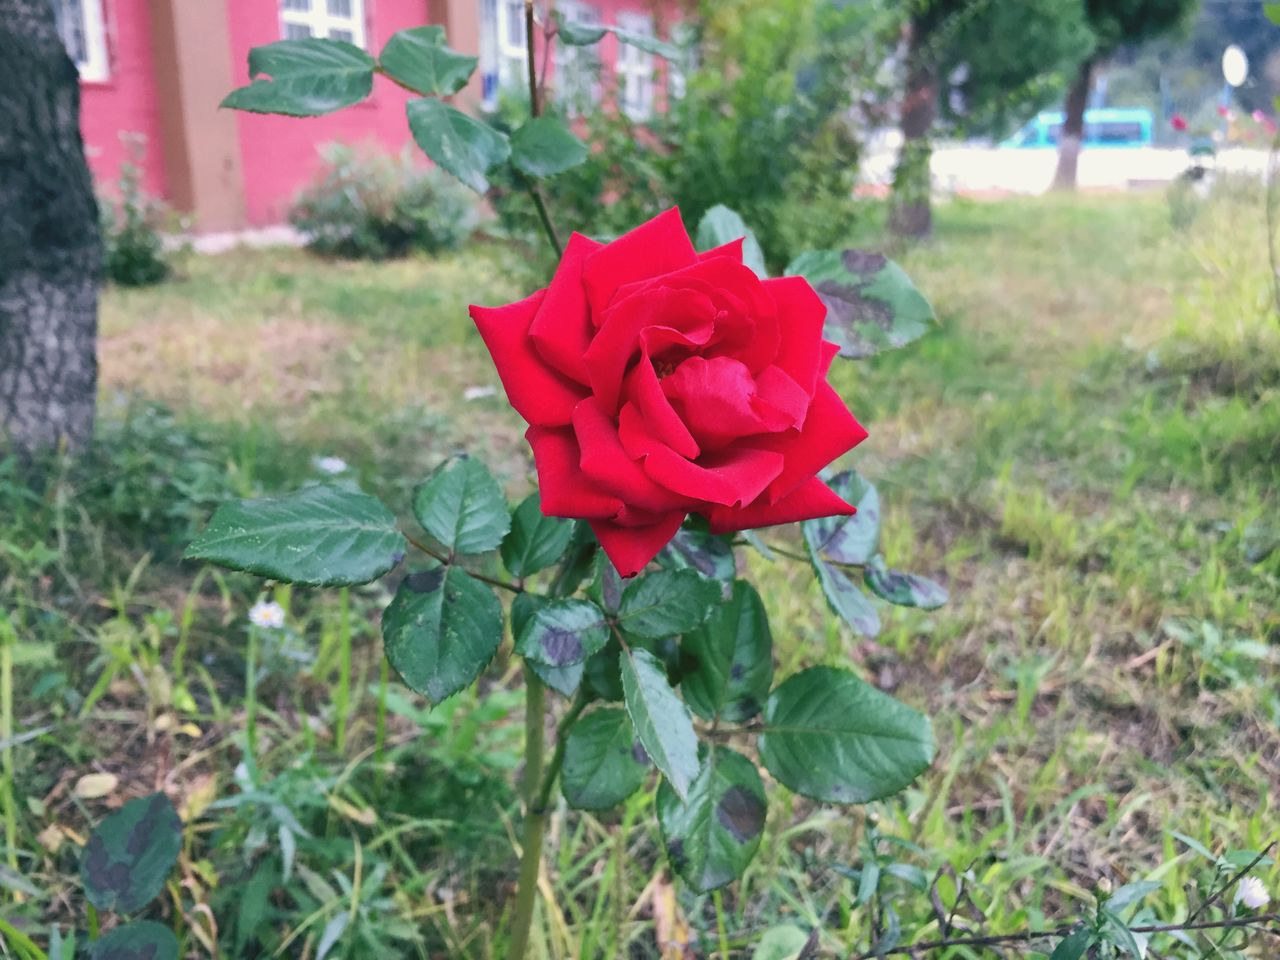 plant, flower, flowering plant, rose, beauty in nature, petal, rose - flower, fragility, vulnerability, red, freshness, inflorescence, flower head, plant part, nature, leaf, growth, close-up, focus on foreground, land, no people, outdoors